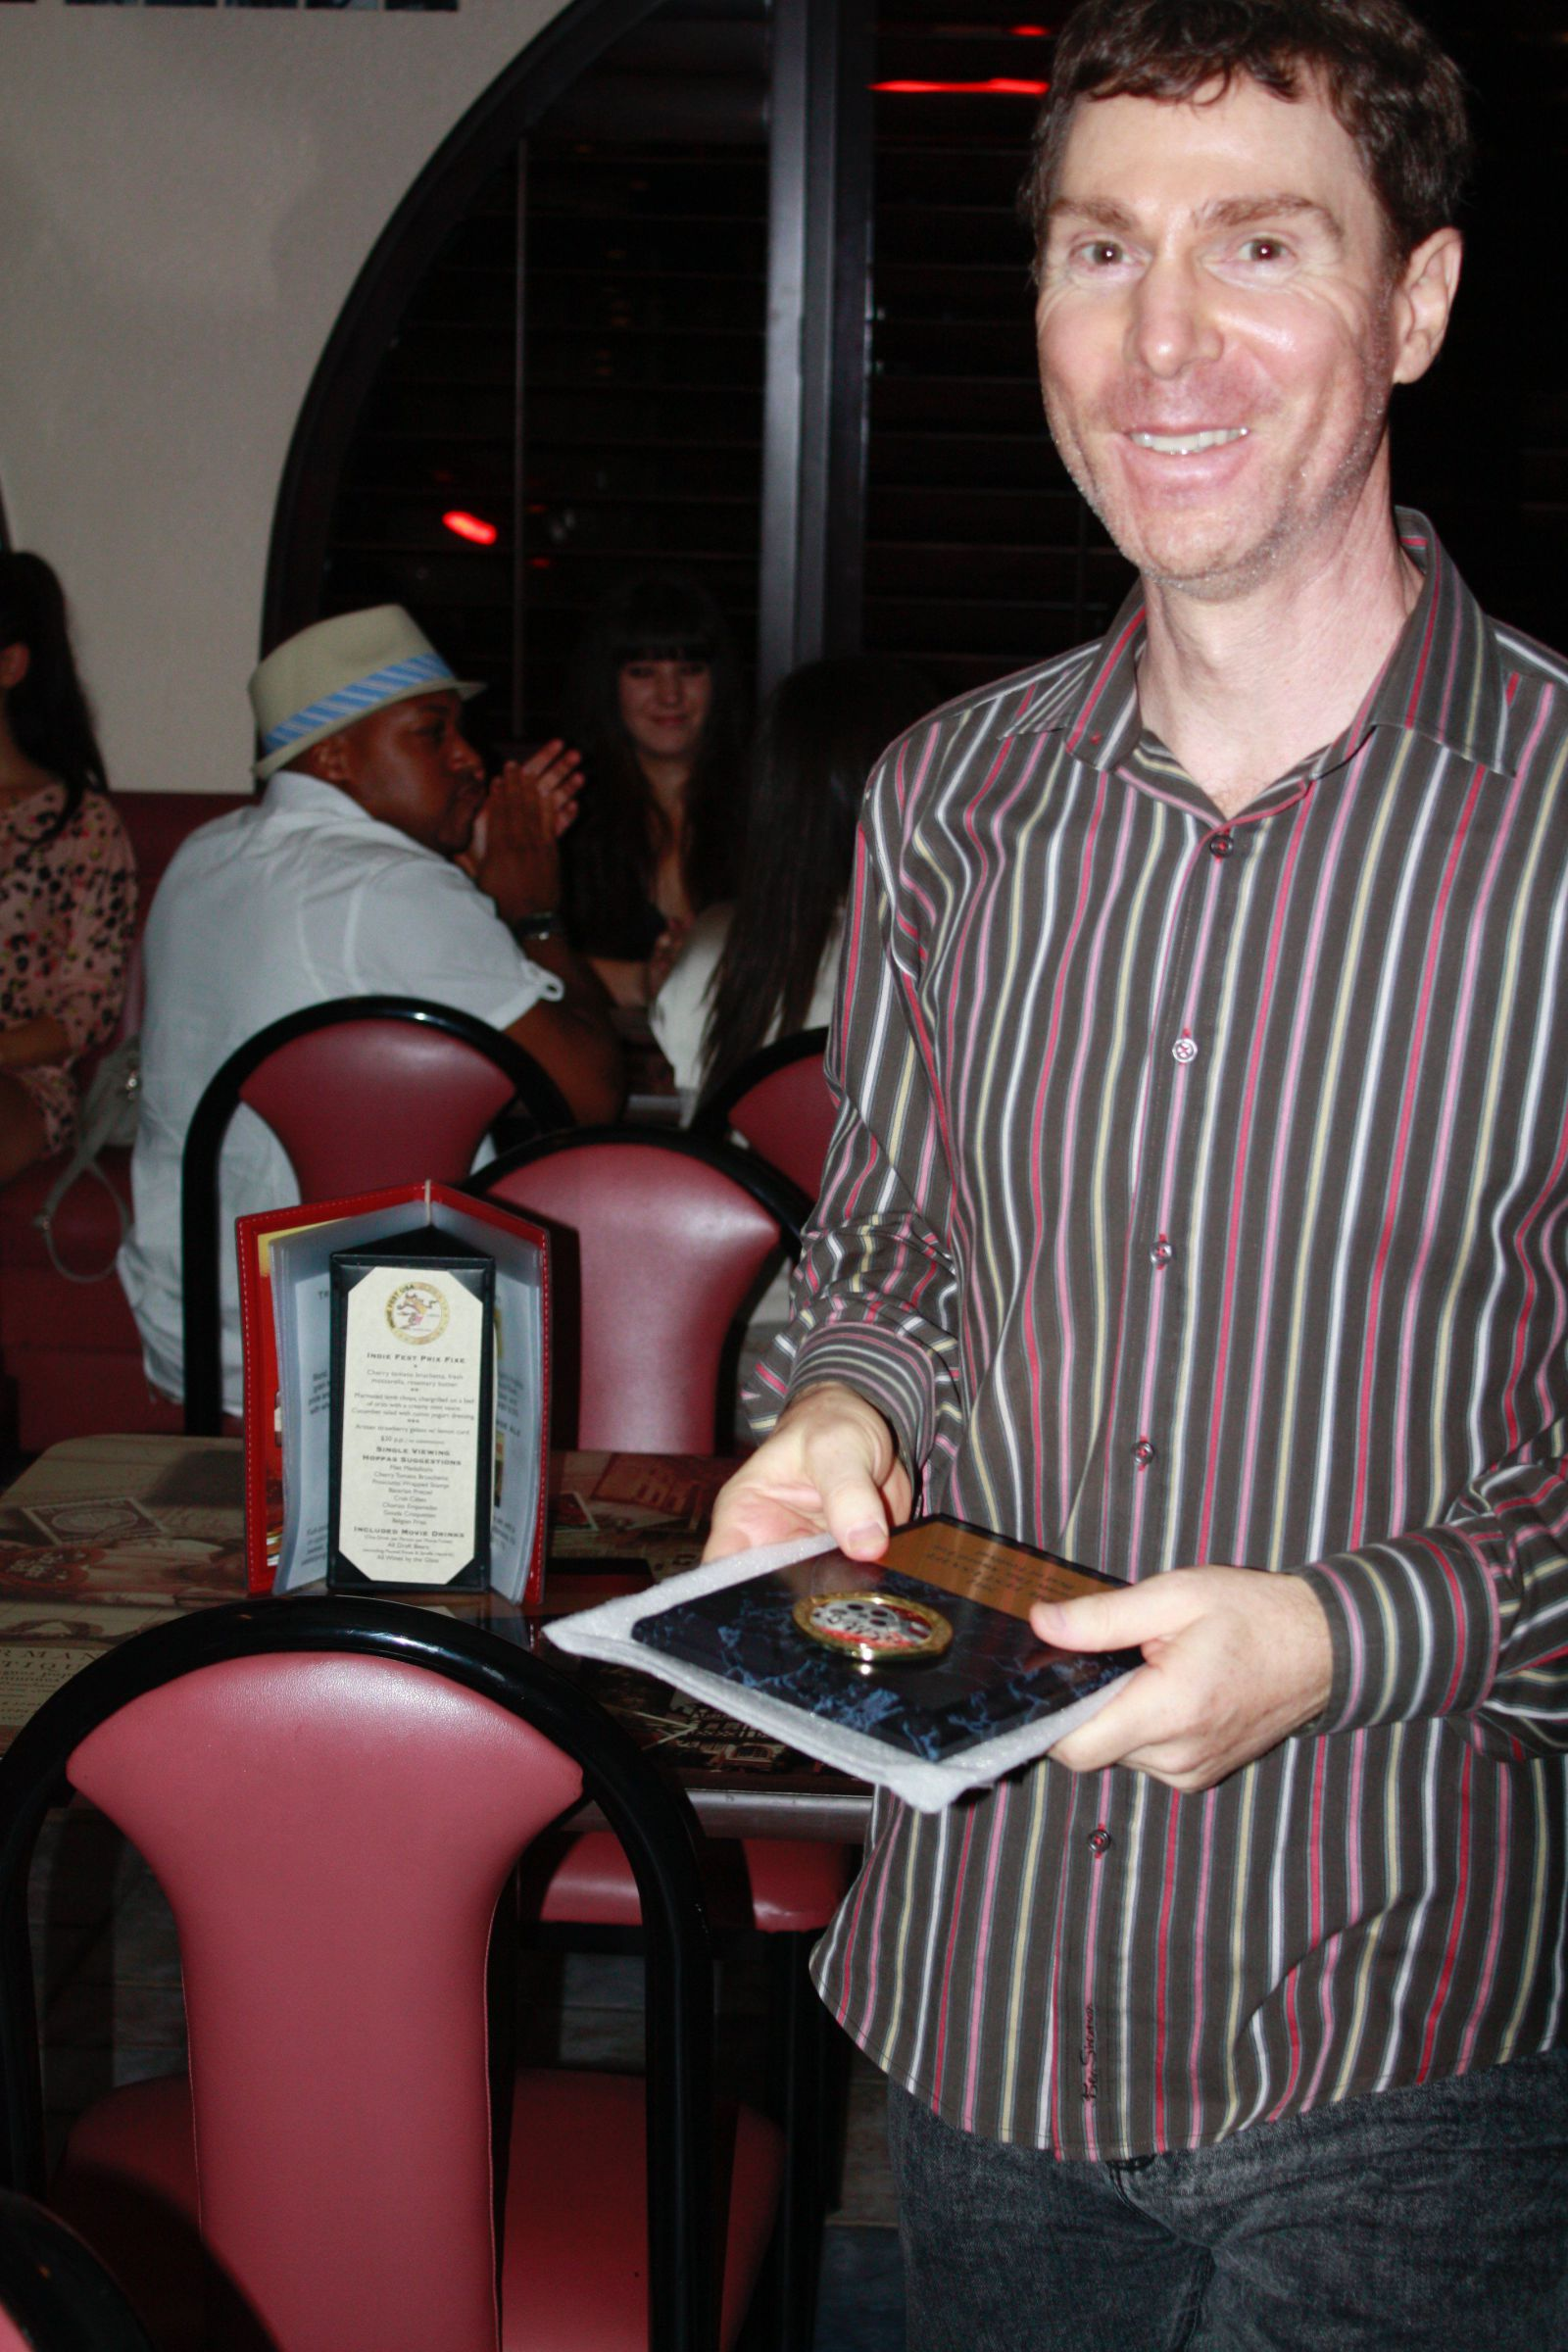 Michael Zelniker holding Indie Fest USA Best of Festival Award